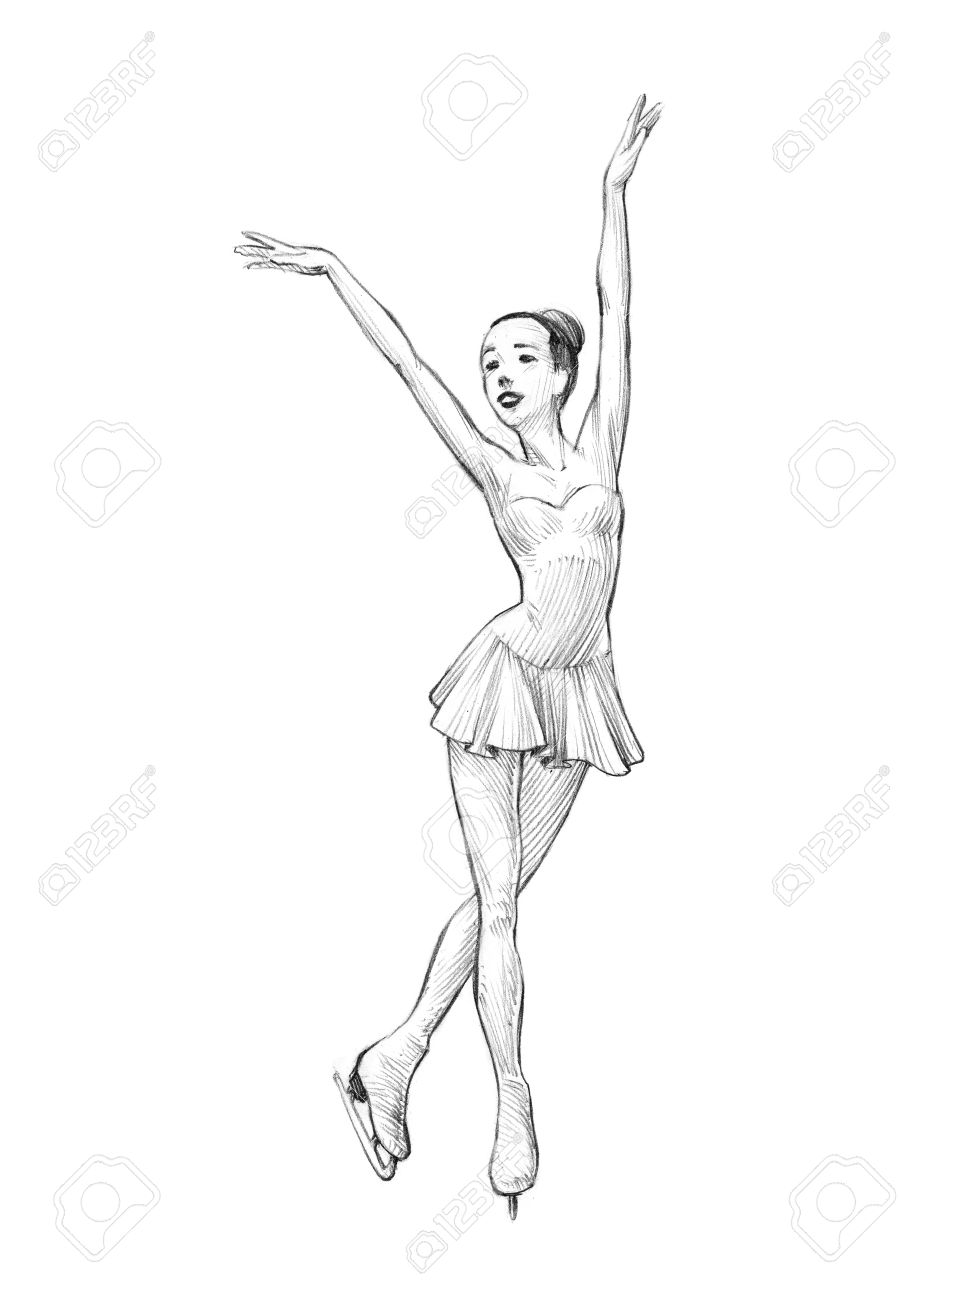 953x1300 Hand Drawn Sketch, Pencil Illustration Of A Figure Skater Woman